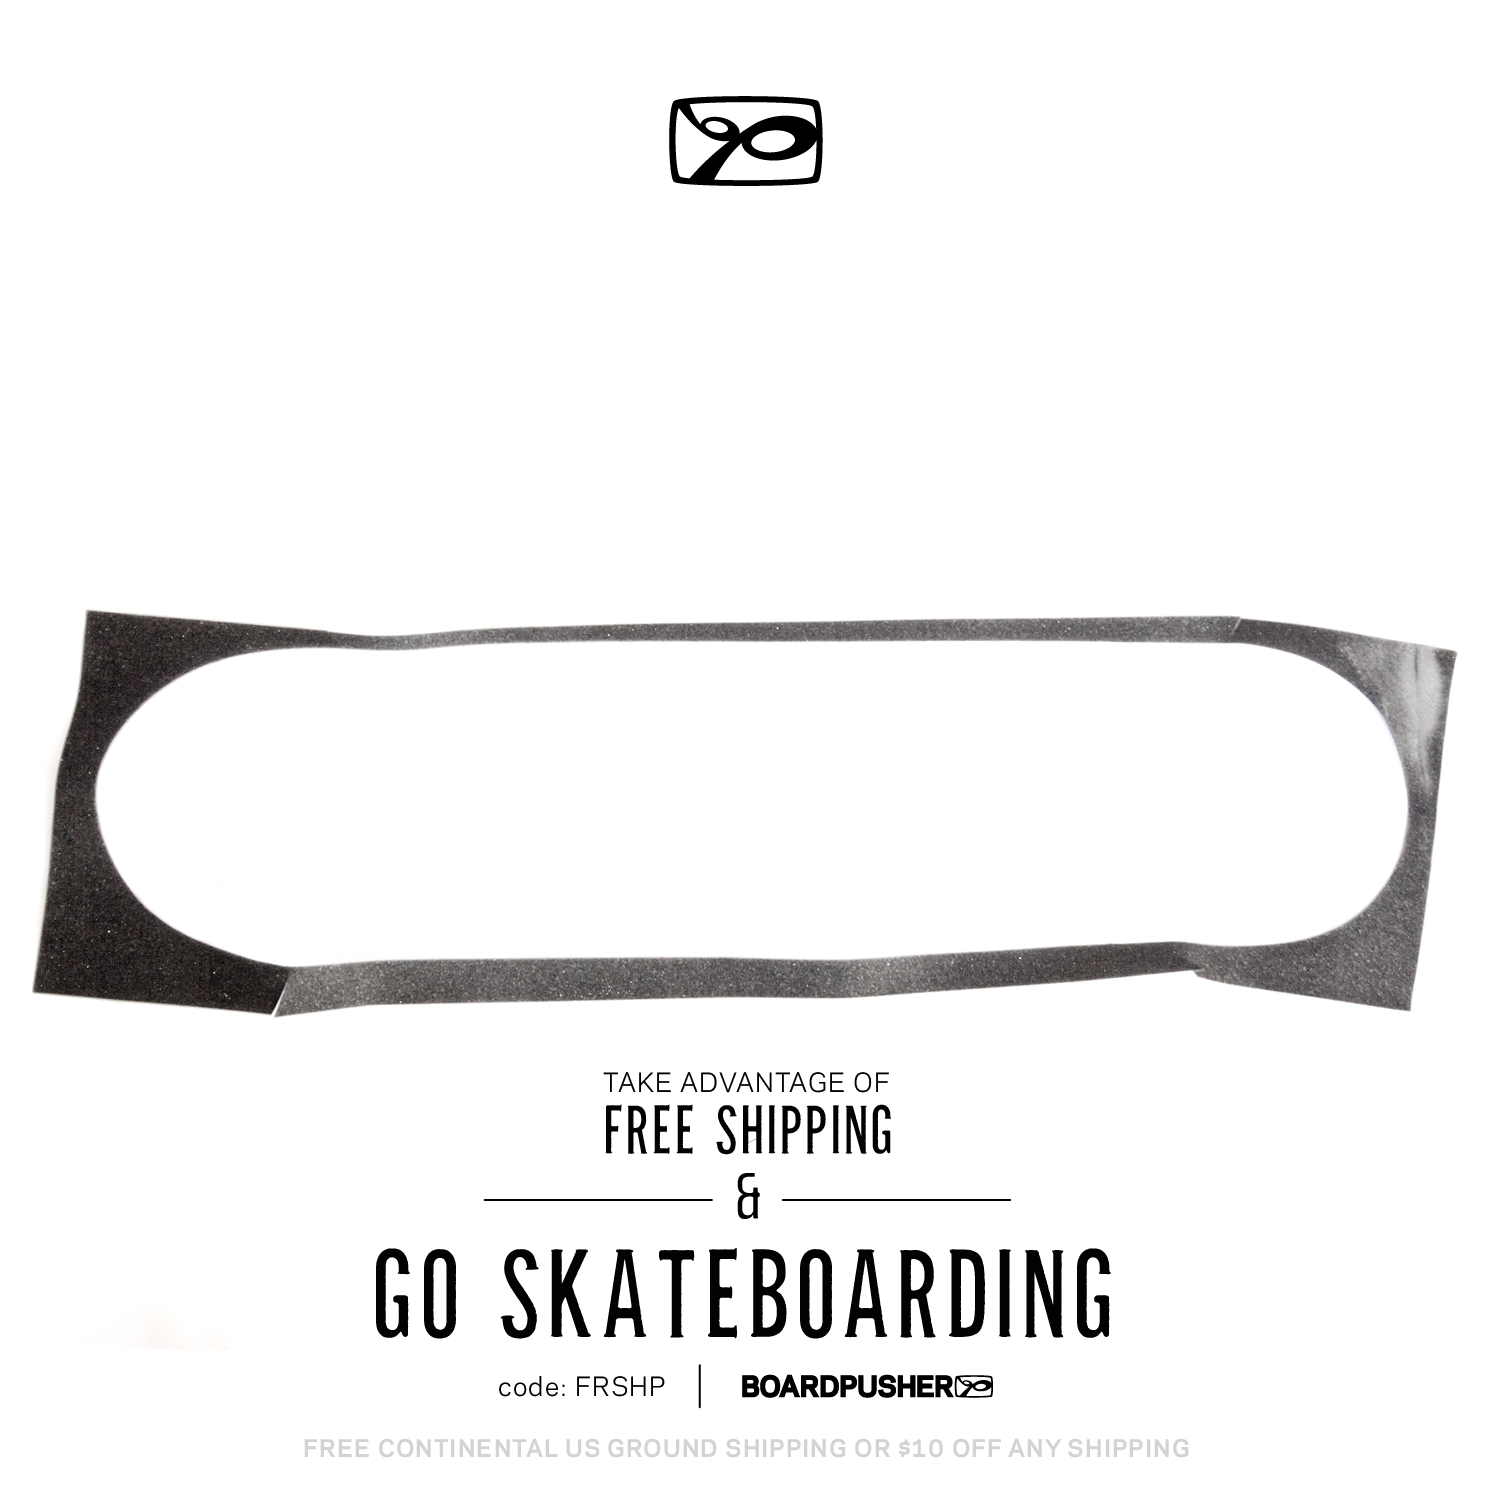 free_shipping_go_skate-01.png